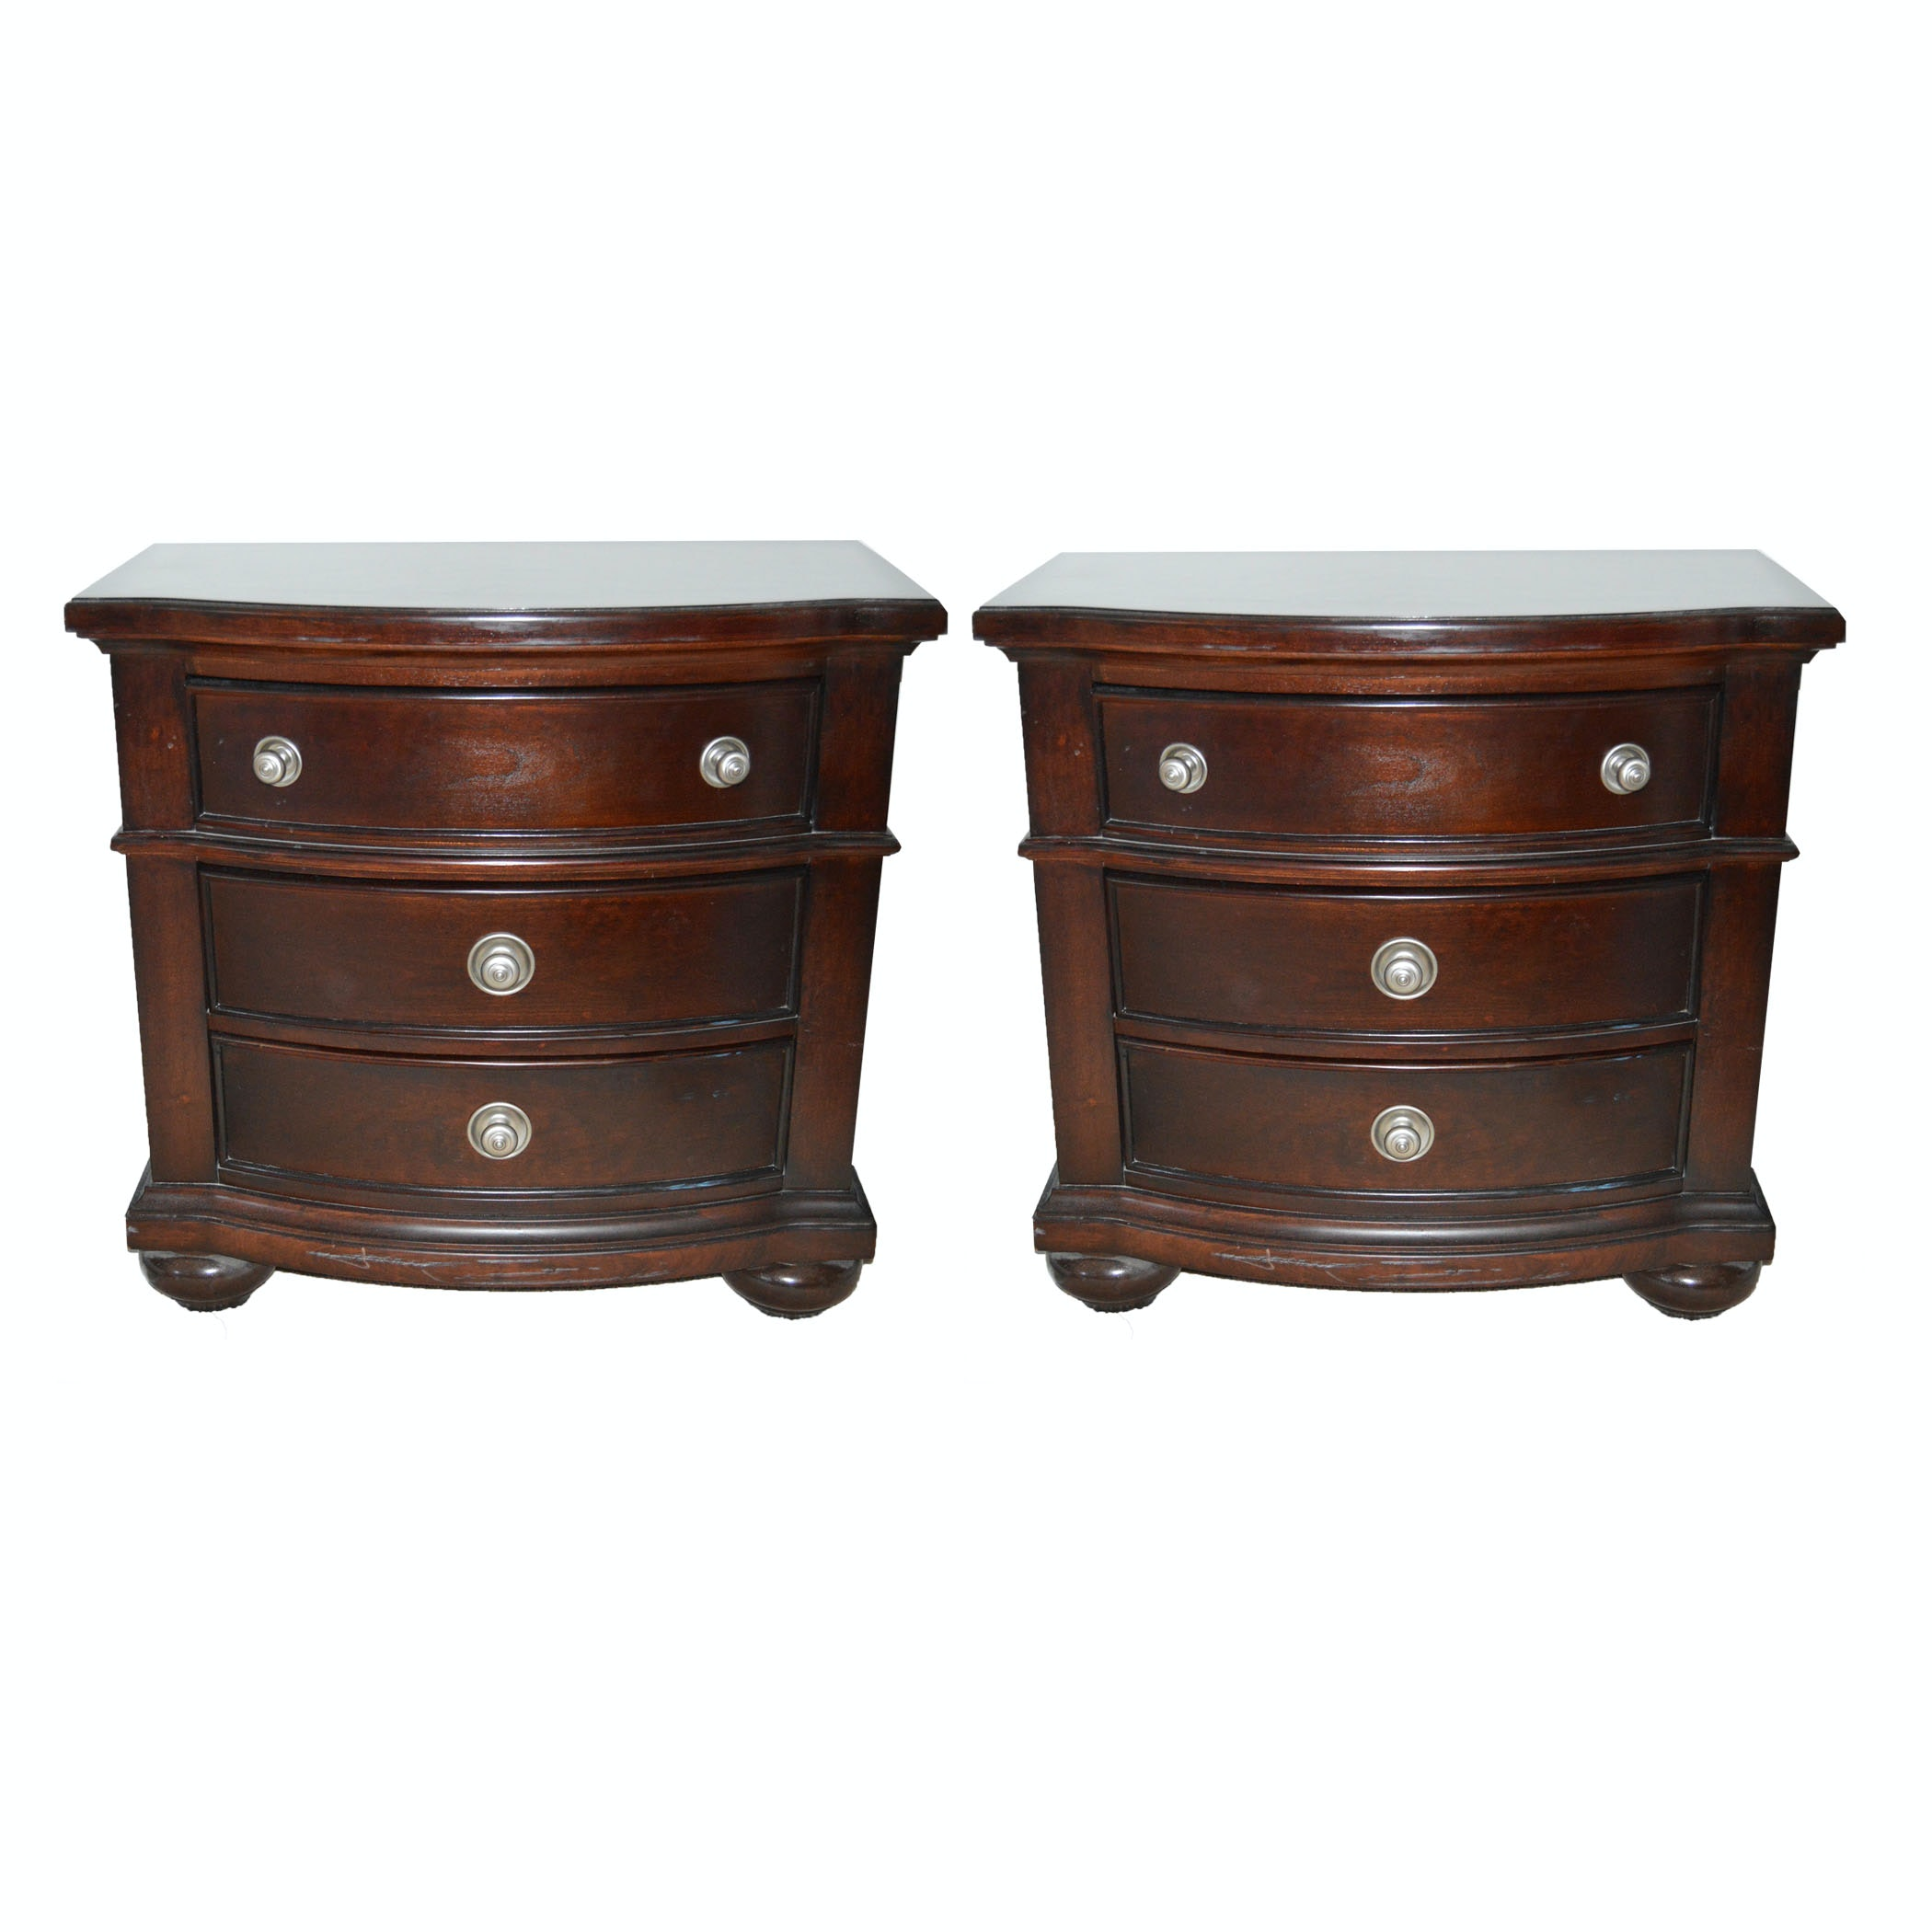 Pair of Mahogany Stained Nightstands